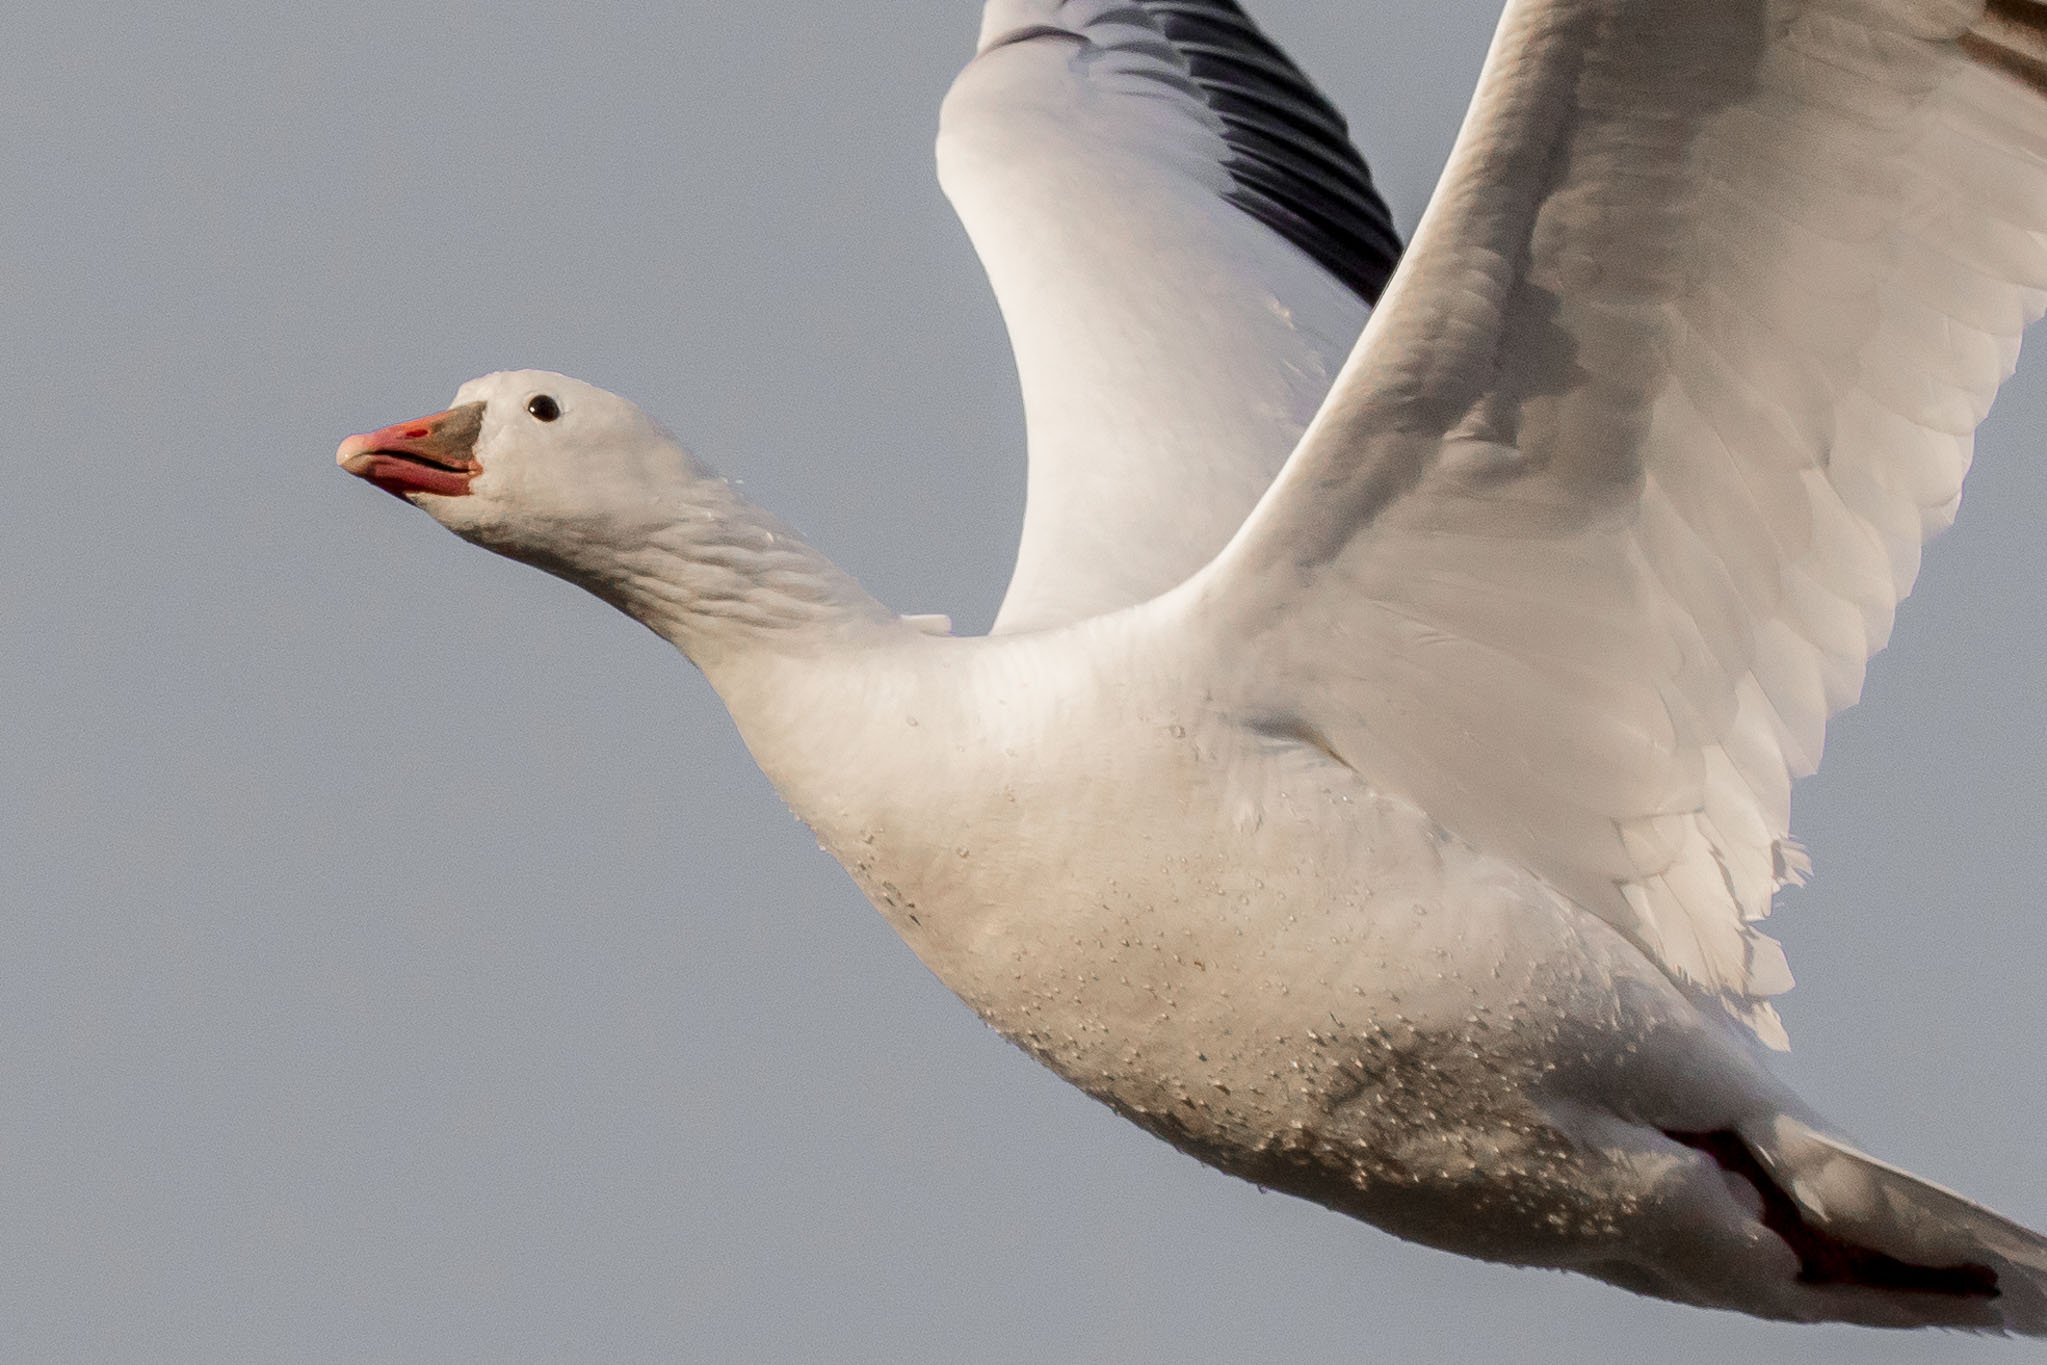 Ross's Goose flying from roost, Bosque del Apache National Wildlife Refuge, San Antonio NM, December 20, 2014